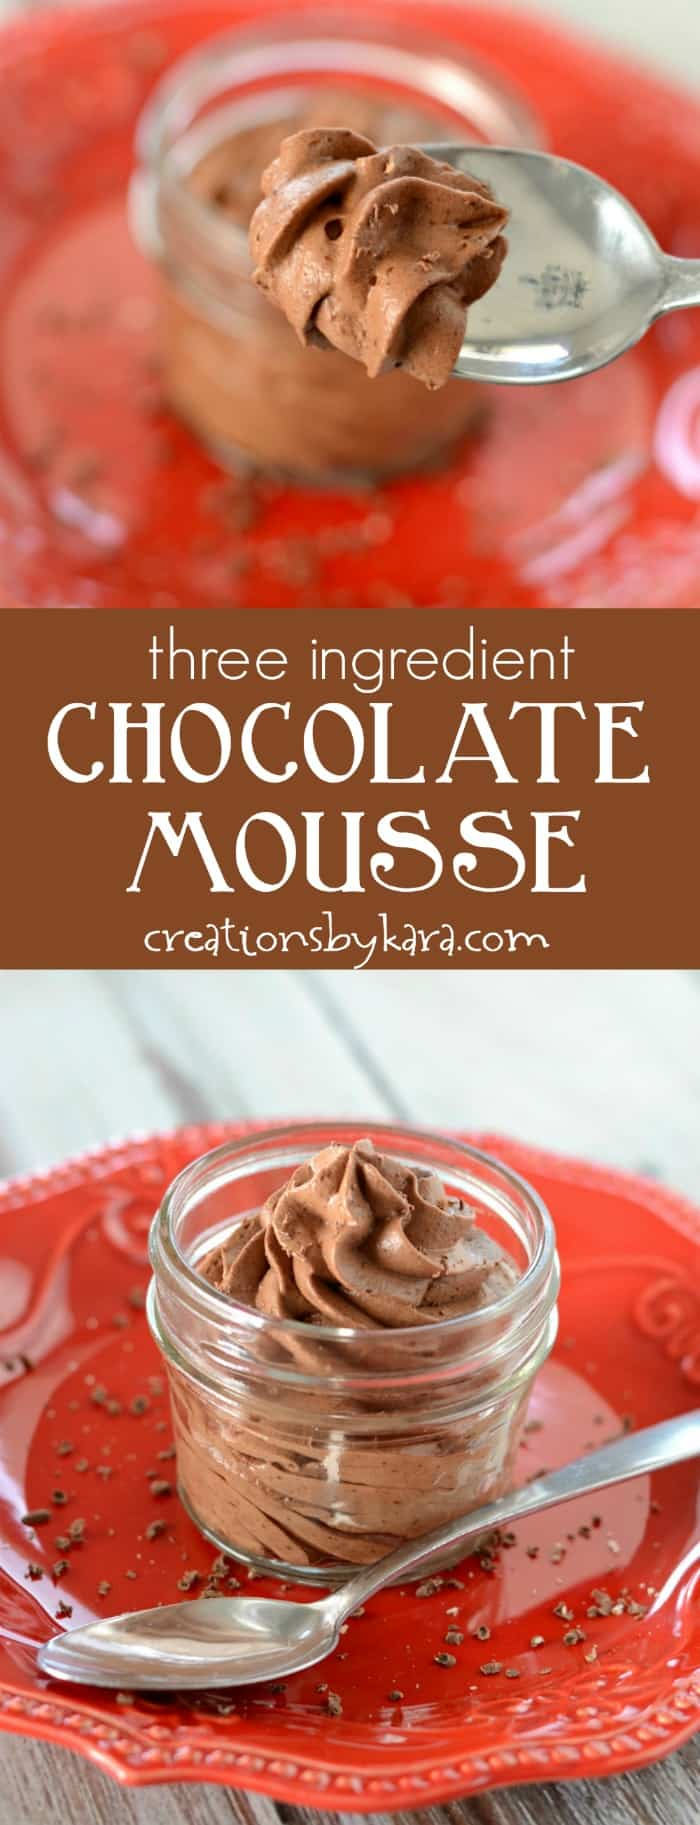 Easy Chocolate Mousse 3 Ingredient Creations By Kara